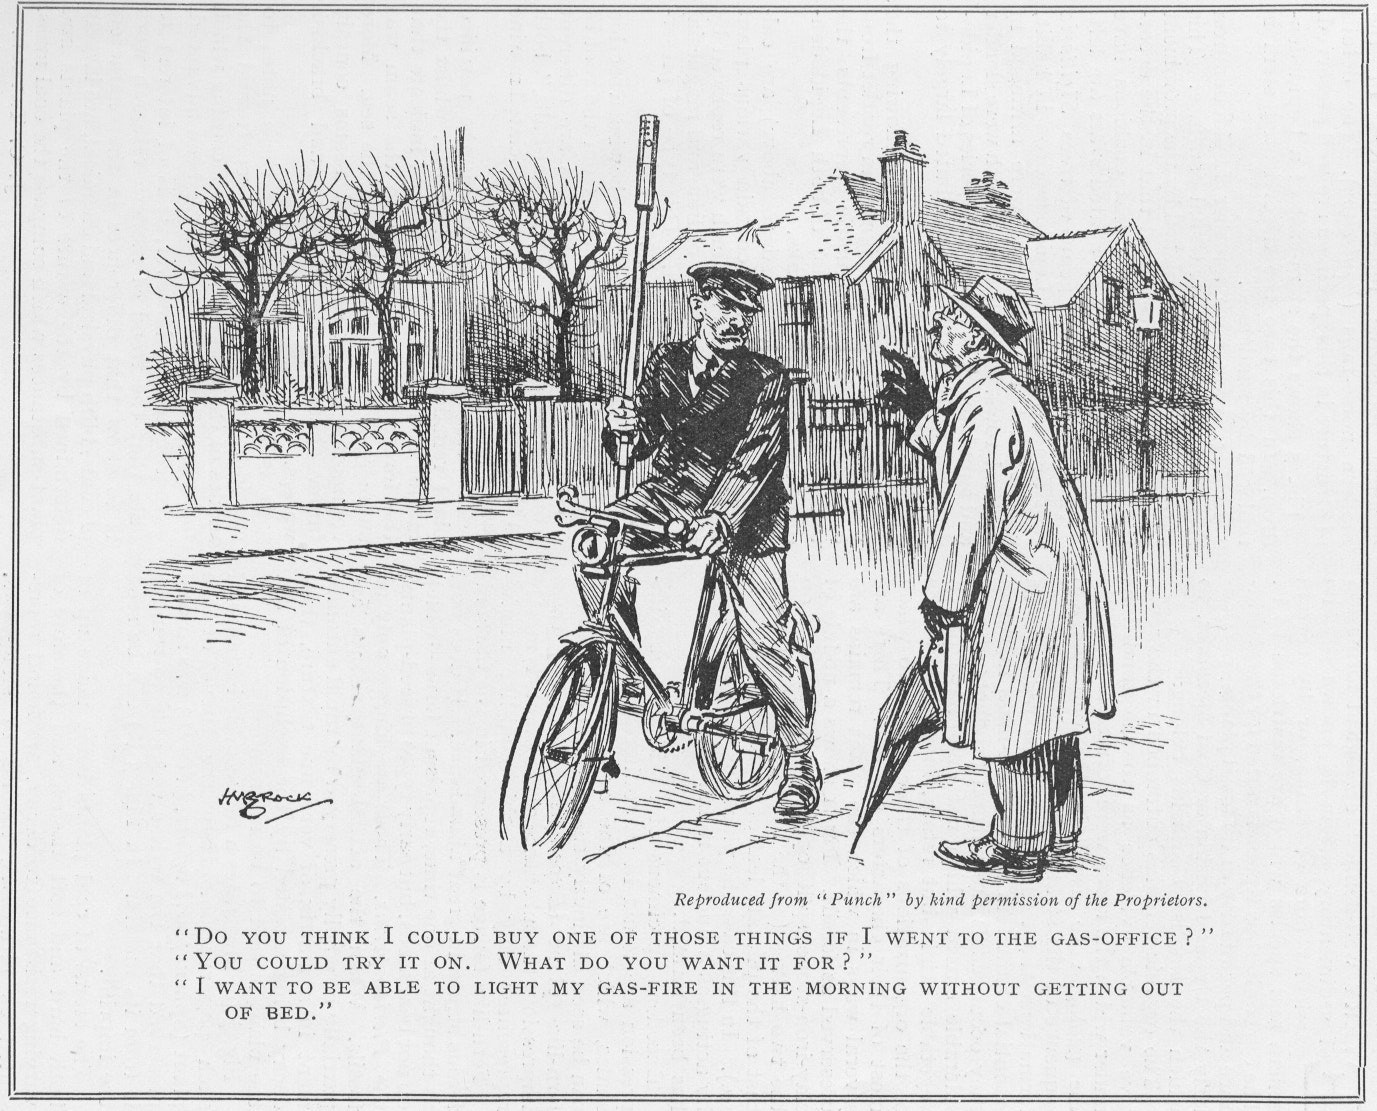 A 1930 cartoon from the periodical 'Punch' features a bicycle-riding lamplighter.